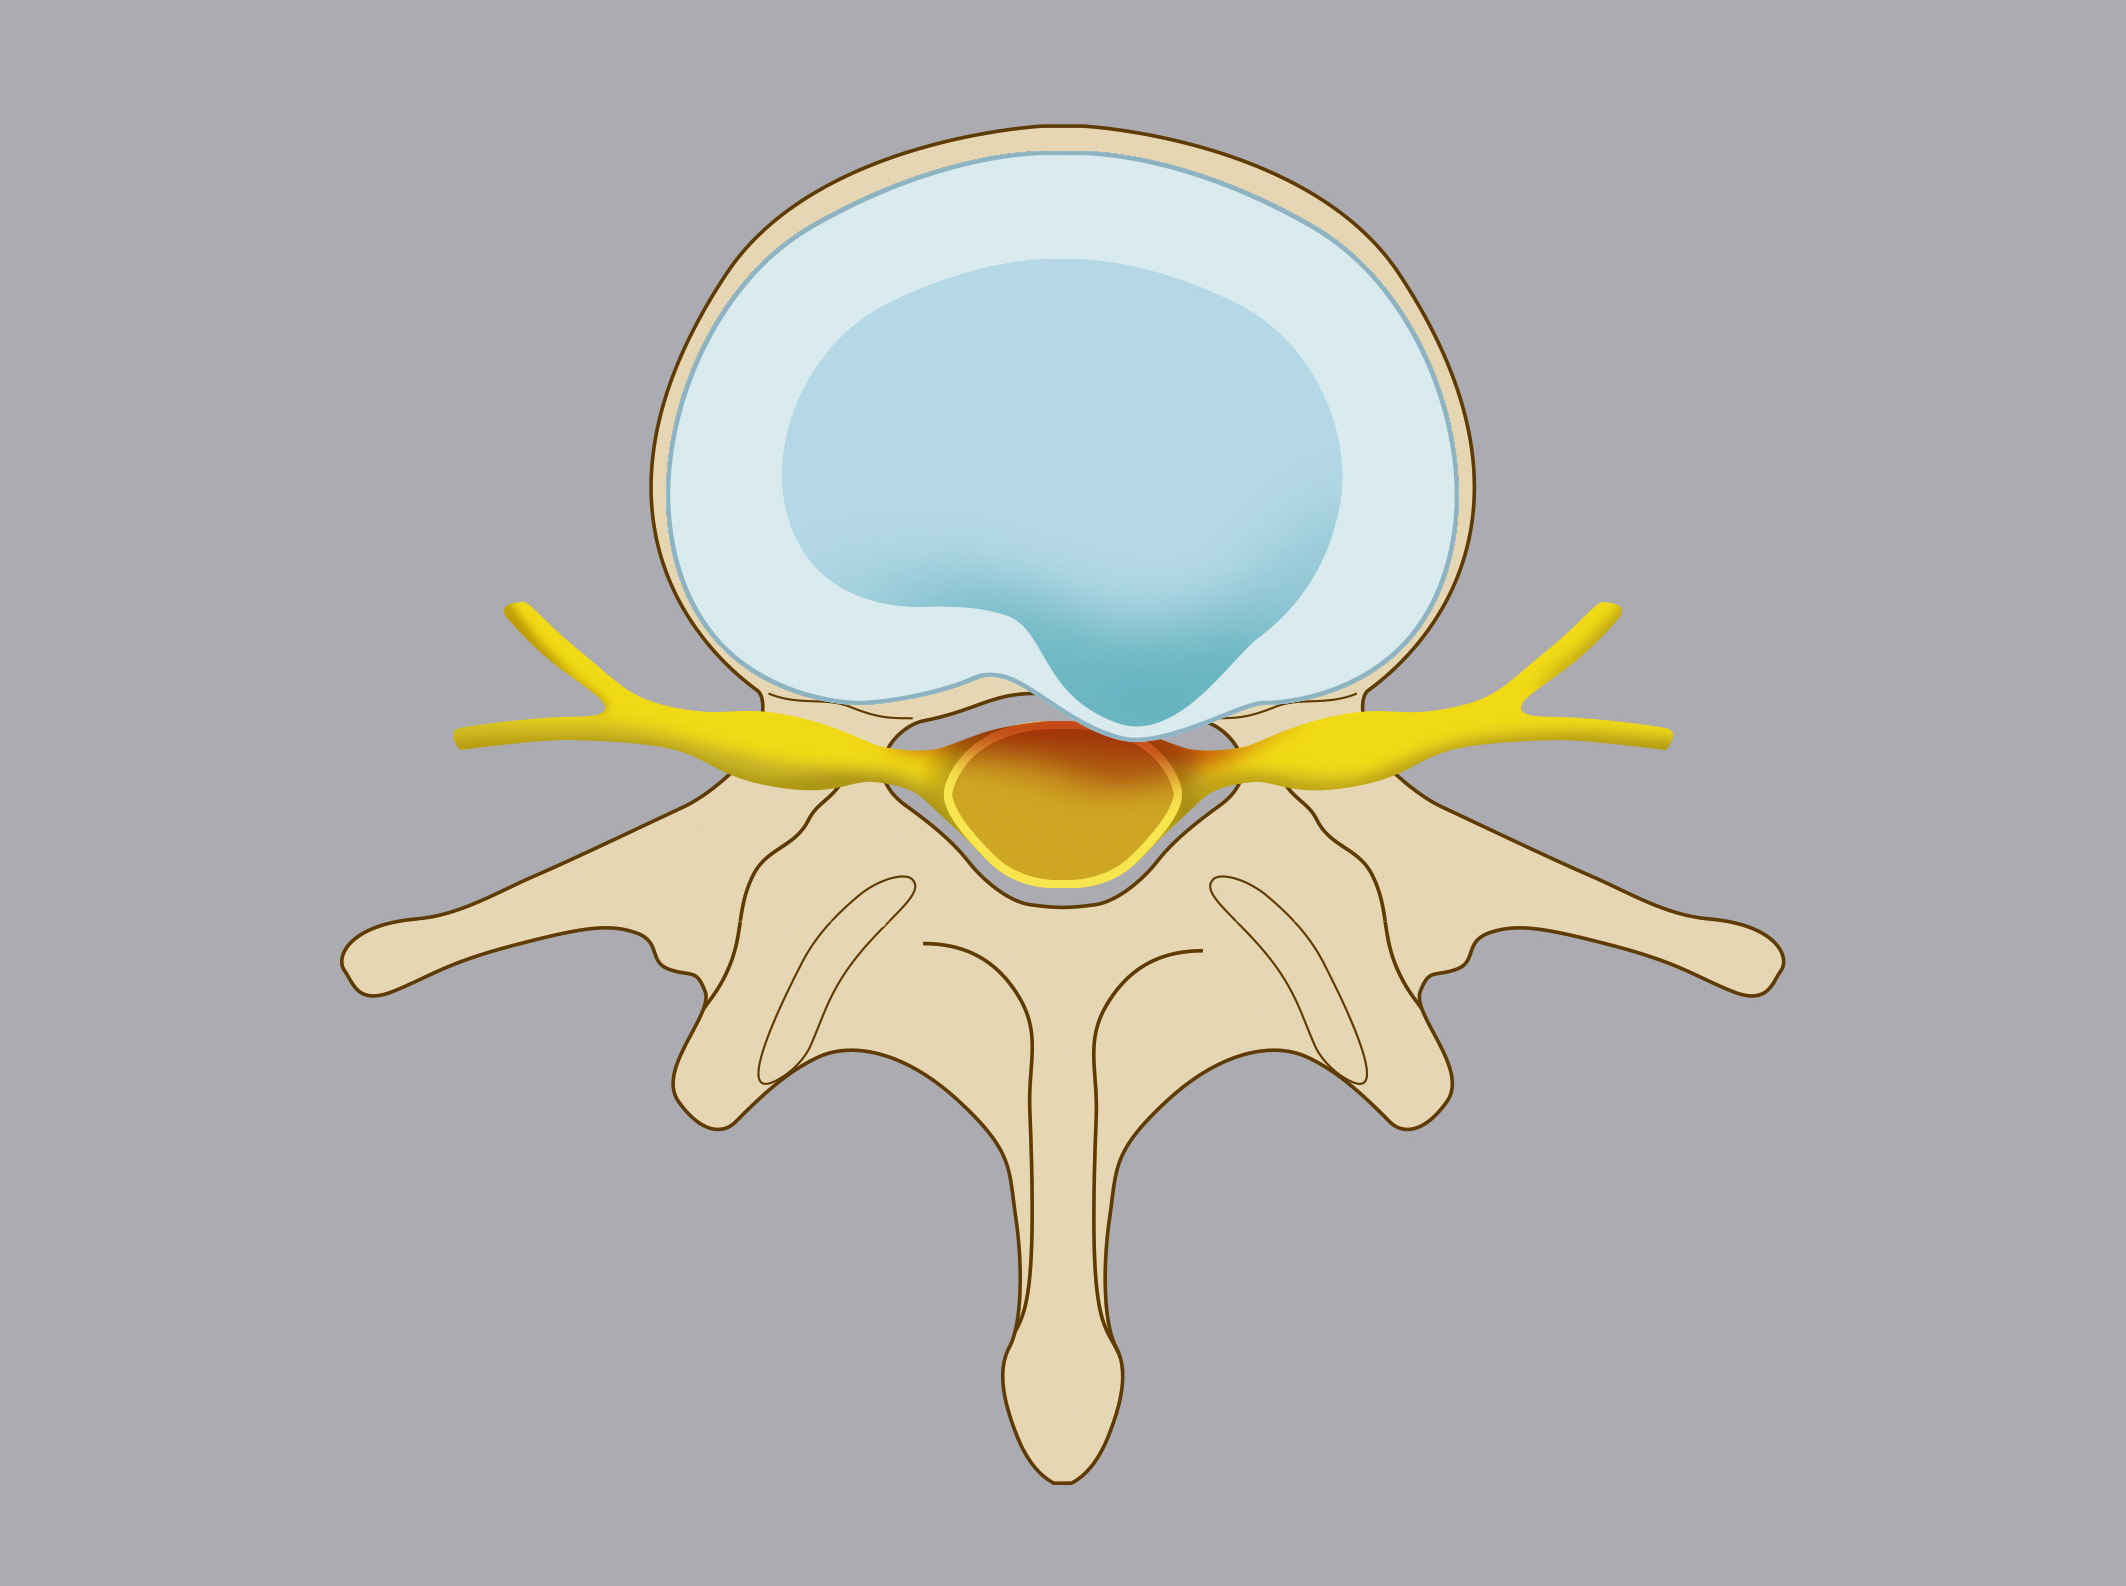 Disc protrusion. The annulus fibrosus goes through a deformation (but remains intact) caused  by the nucleus pulposus.